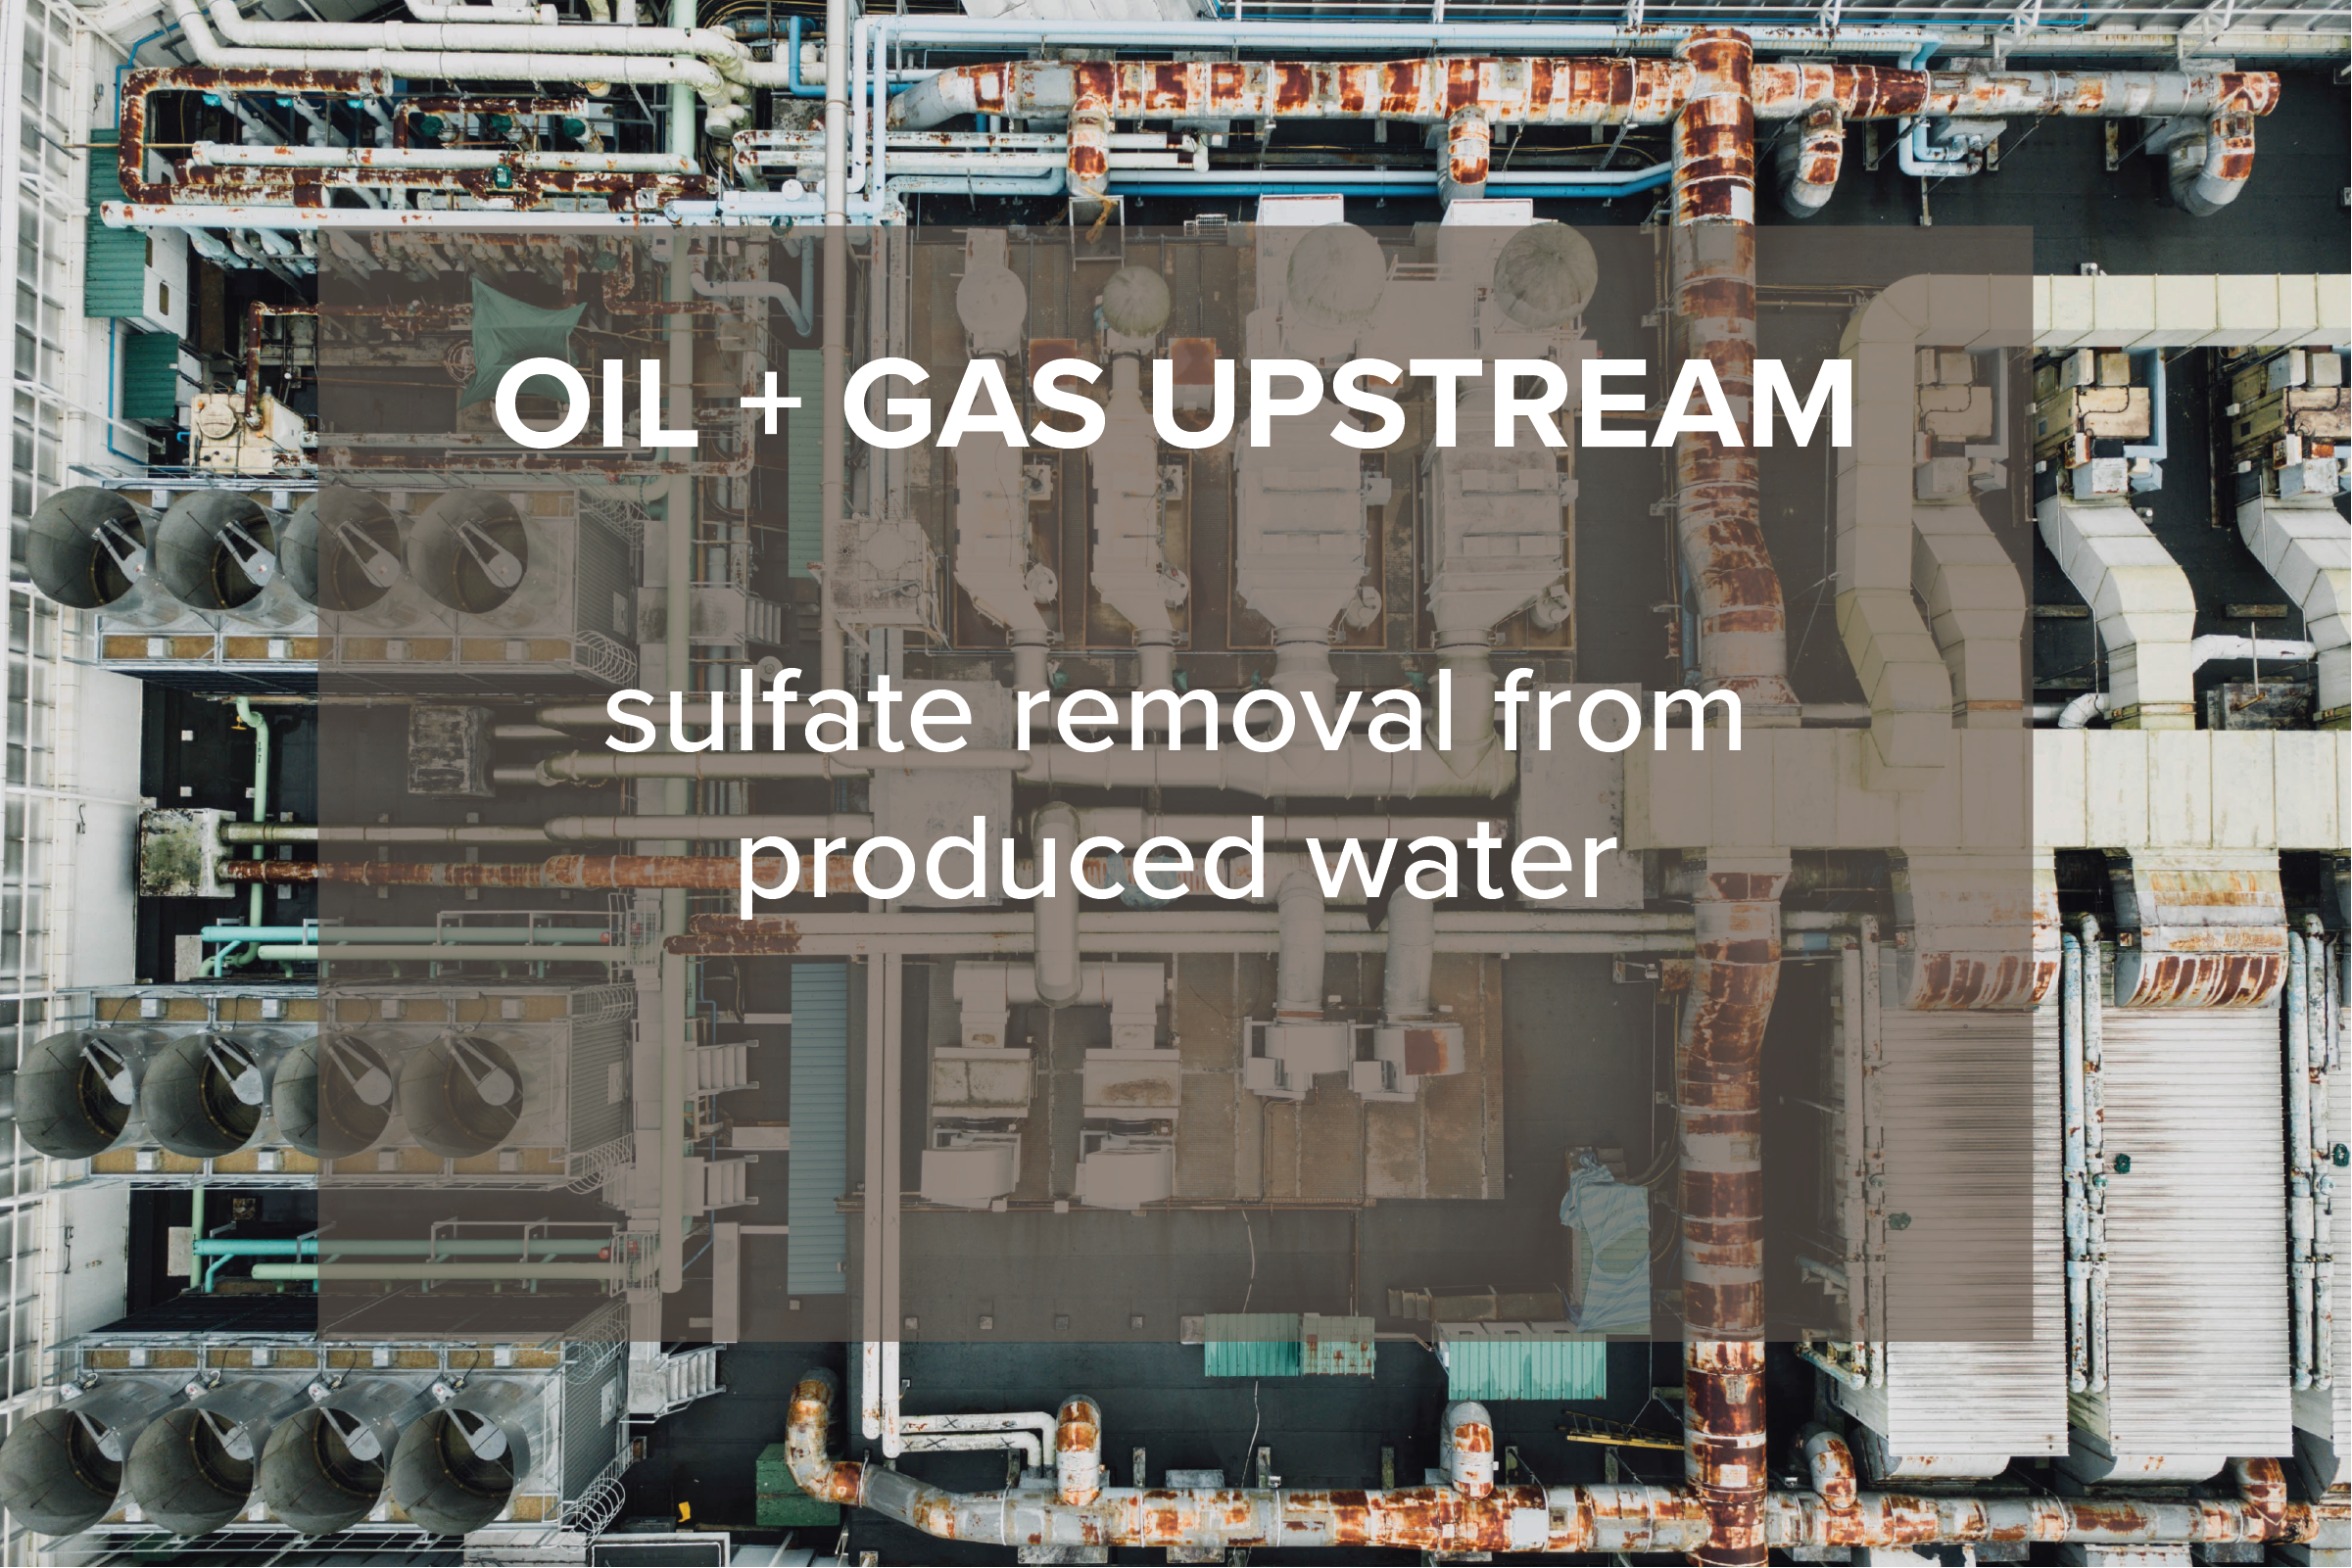 OIL + GAS UPSTREAM  sulfate removal from produced water